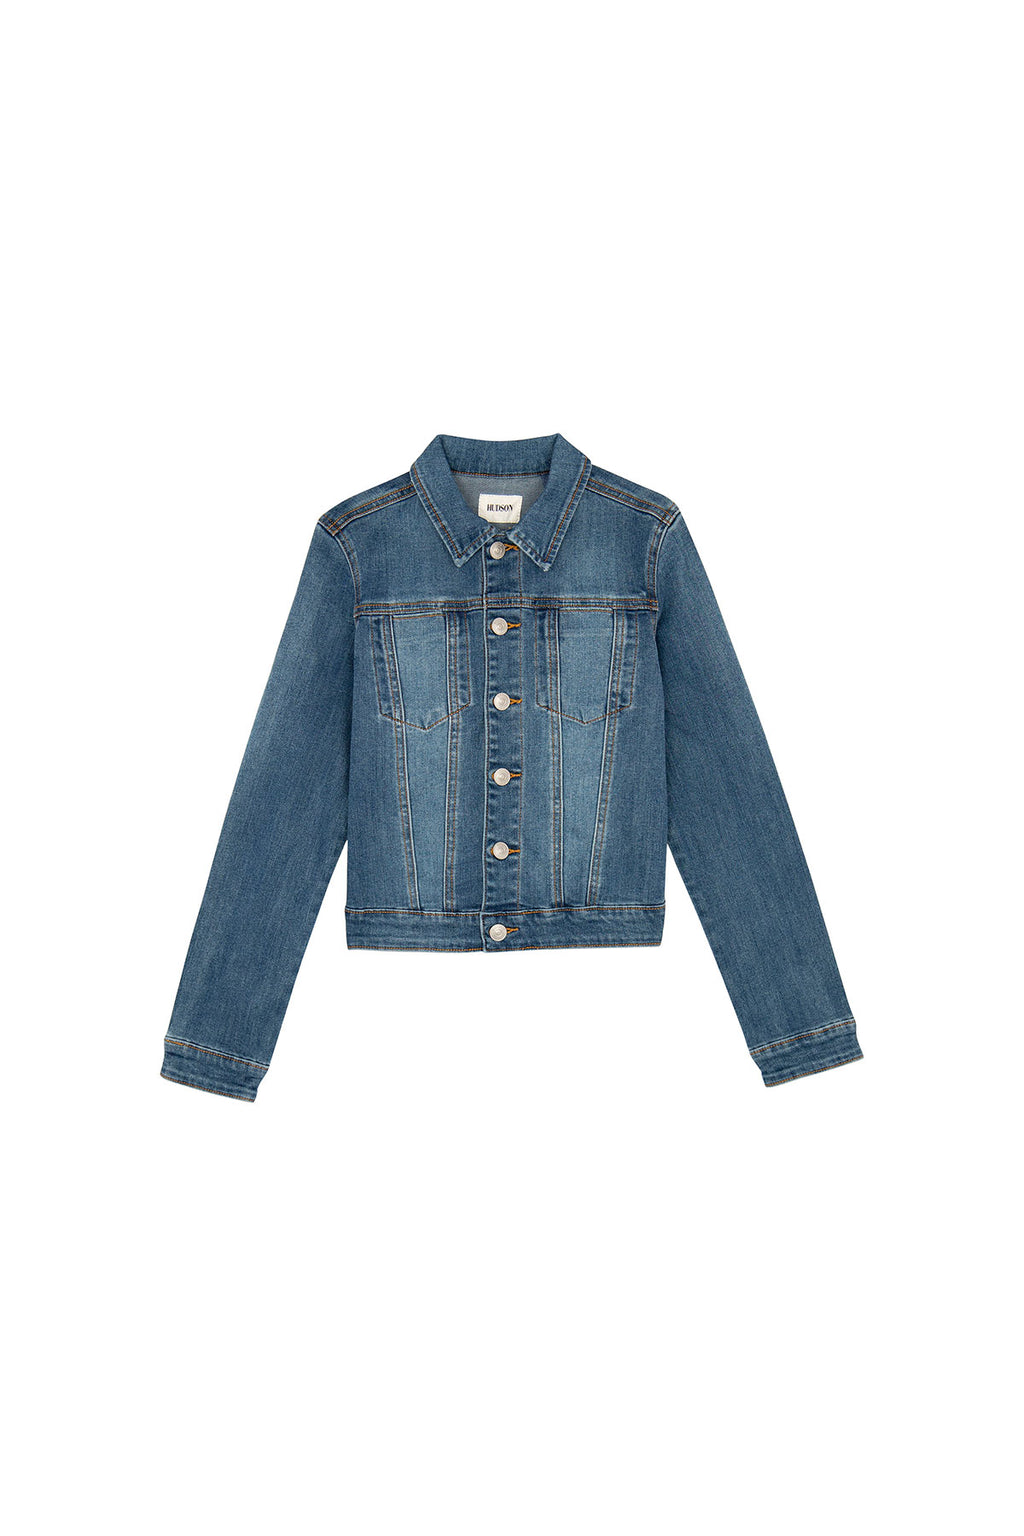 Little Girls Jean Jacket, Sizes 2T-6X - hudsonjeans